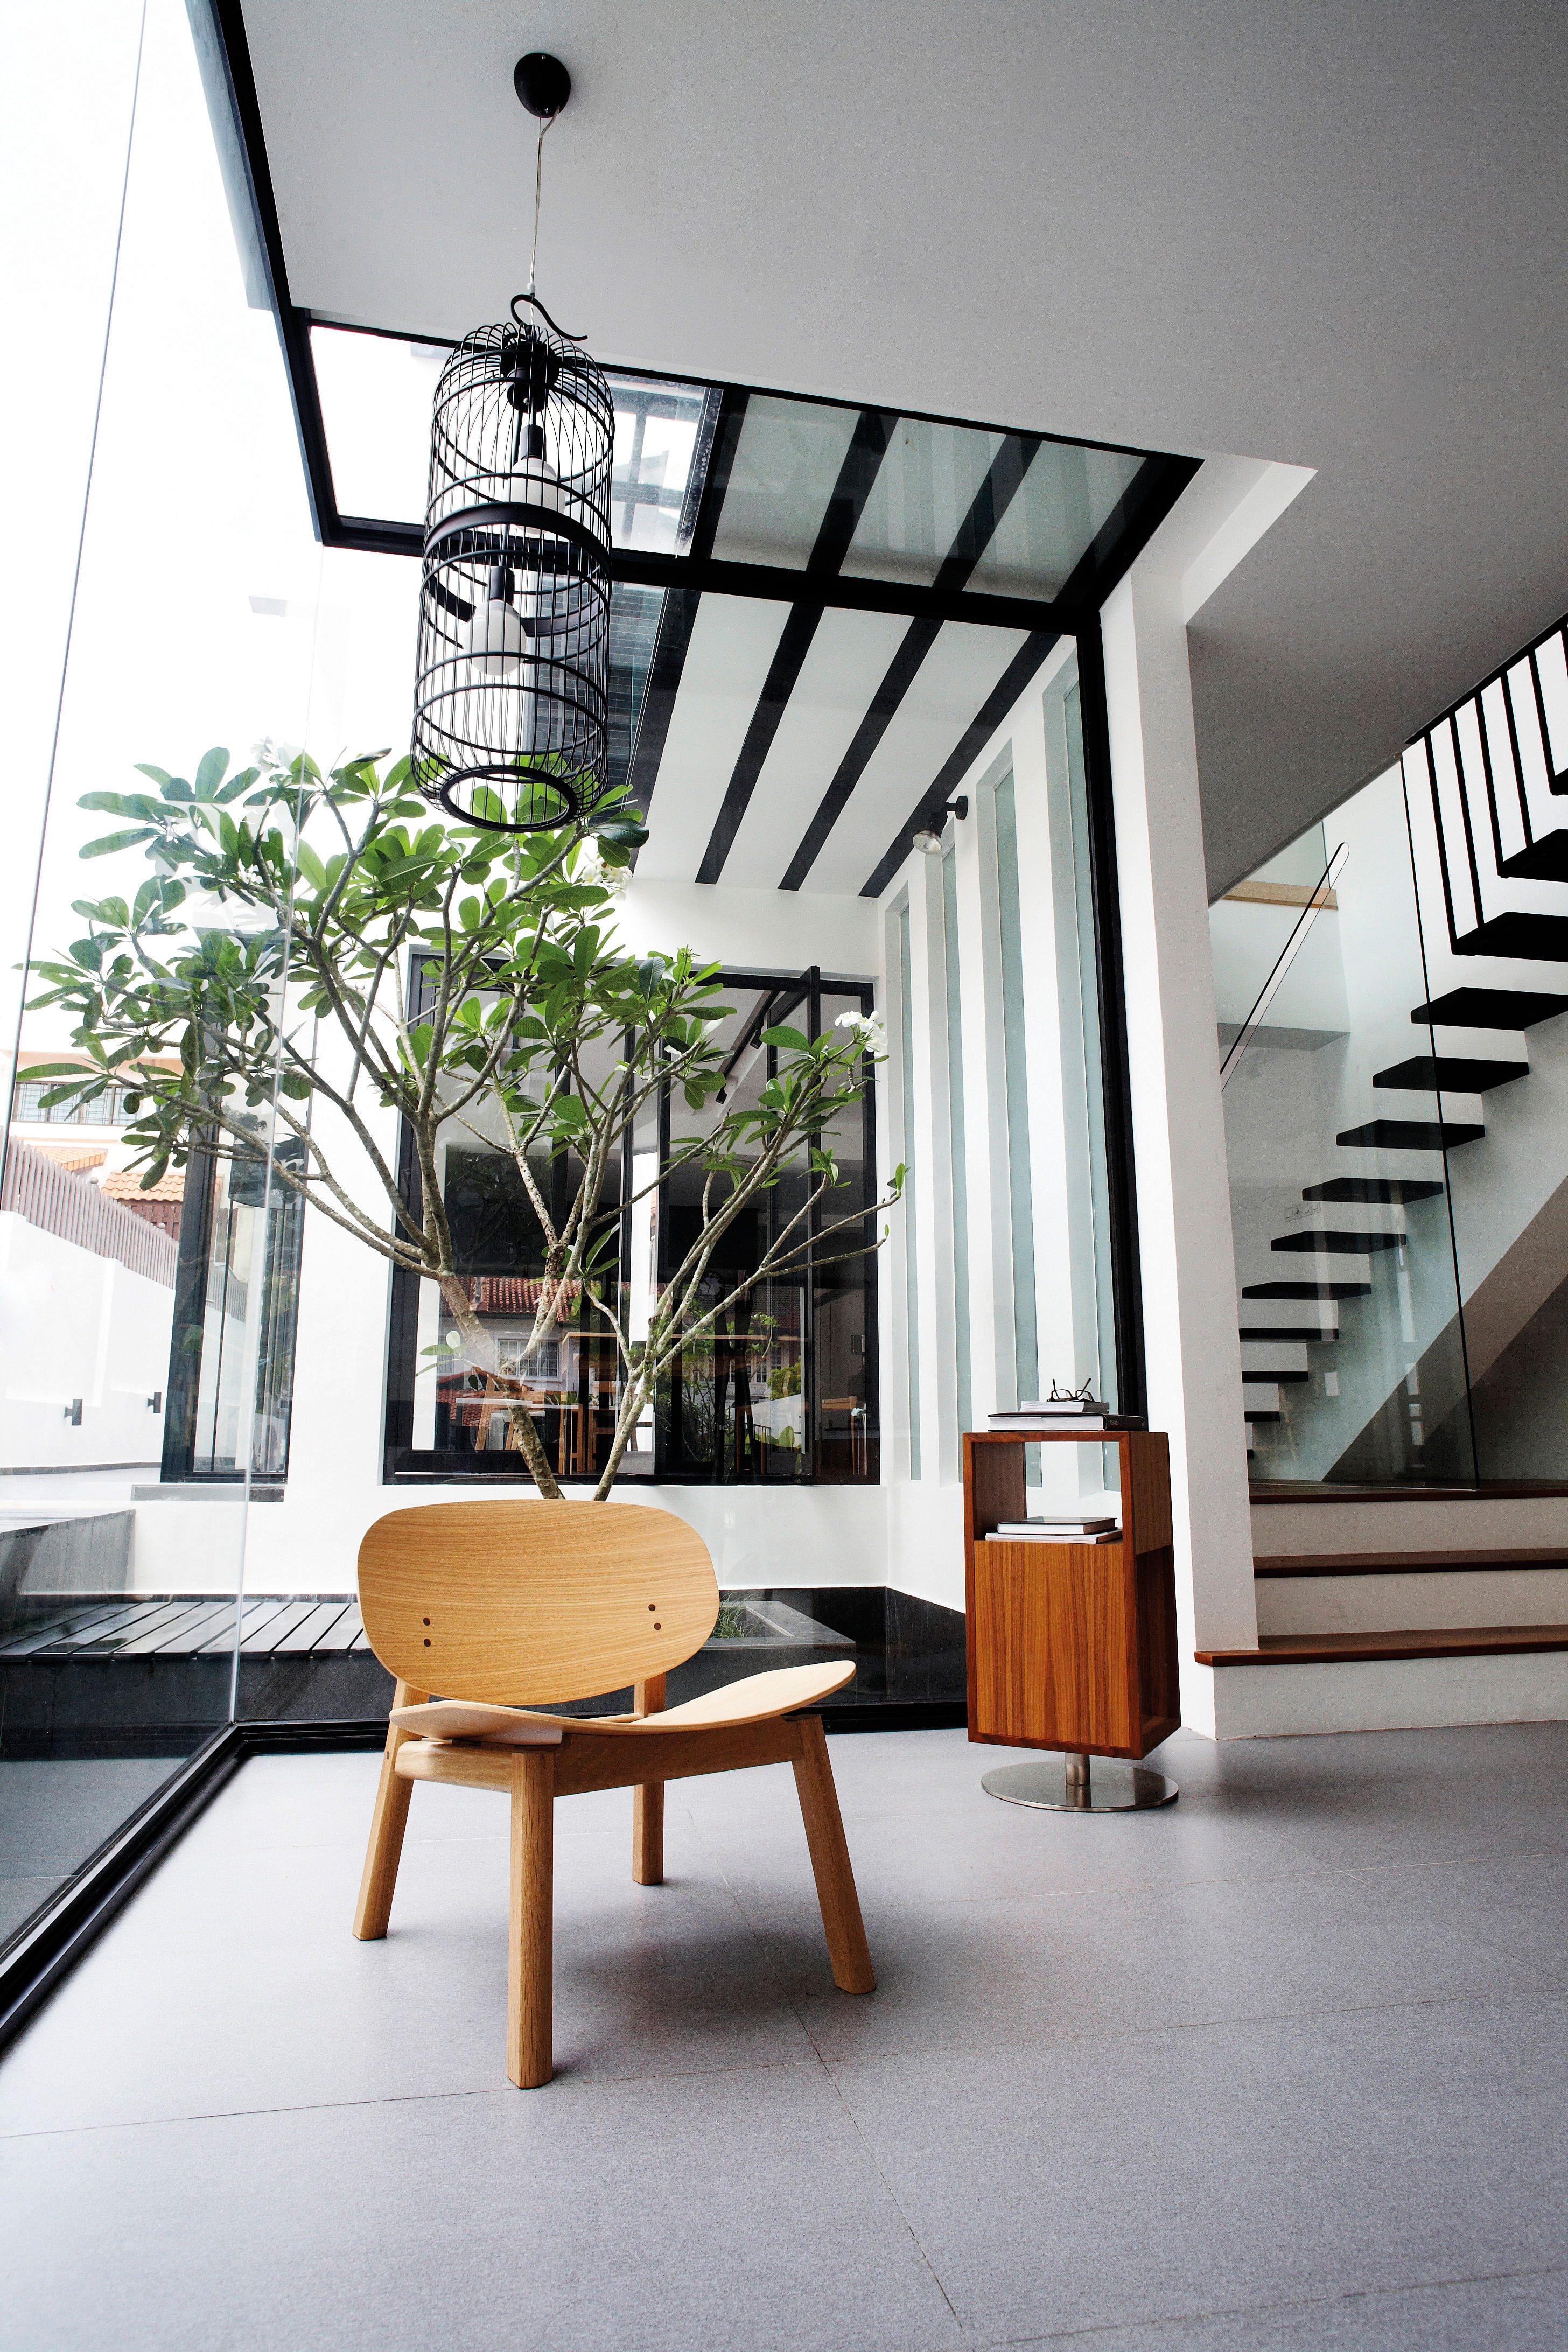 House Tour: This semi-detached house takes on both Japanese and ...